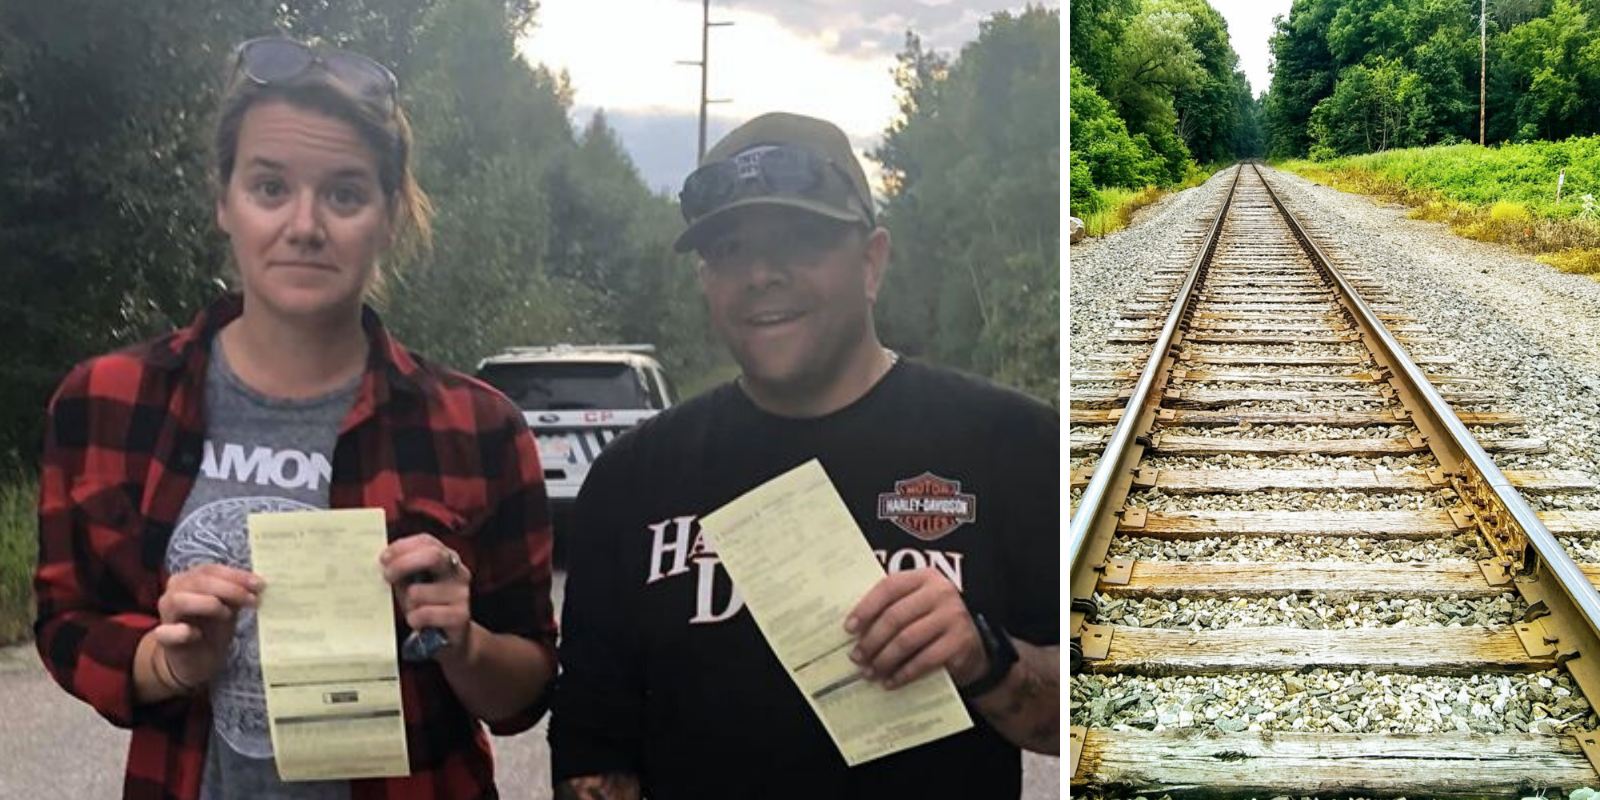 HYPOCRISY: Alberta couple given tickets for walking on CN land while blockaders get free pass